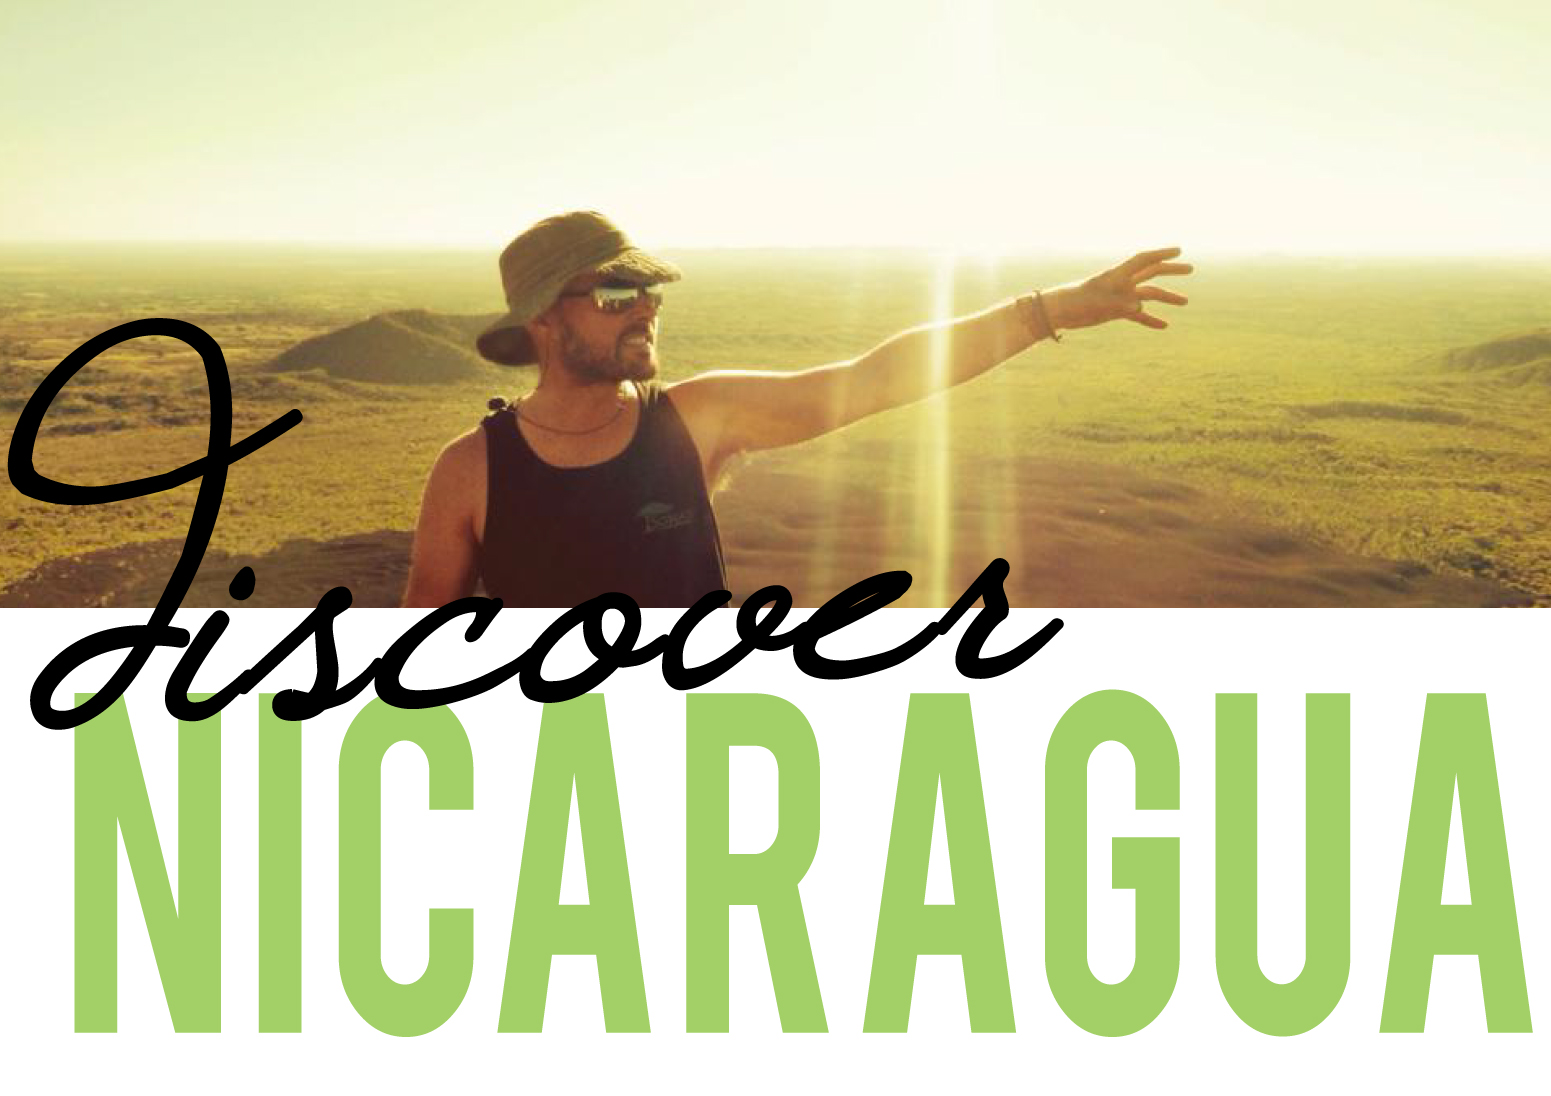 """The """"Land of Lakes and Volcanoes,"""" Nicaragua is one of the poorest countries in the Western Hemisphere but so full of potential. Experience one of the most beautiful off-the-beaten-path travel destinations in the world and help rural communities climb out of poverty."""